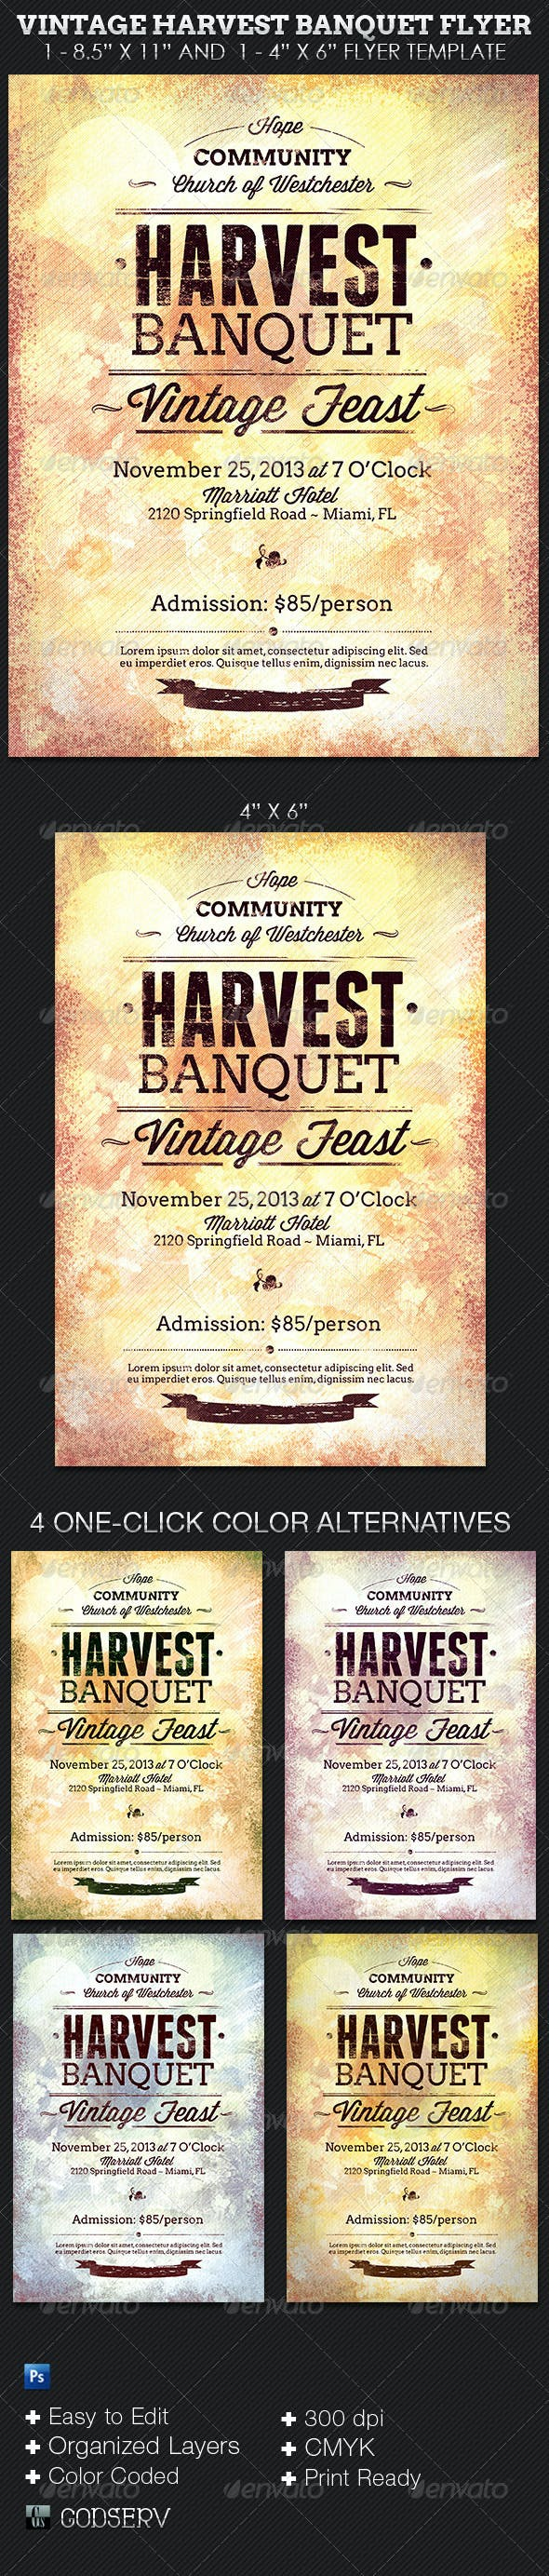 vintage harvest banquet flyer template by godserv graphicriver